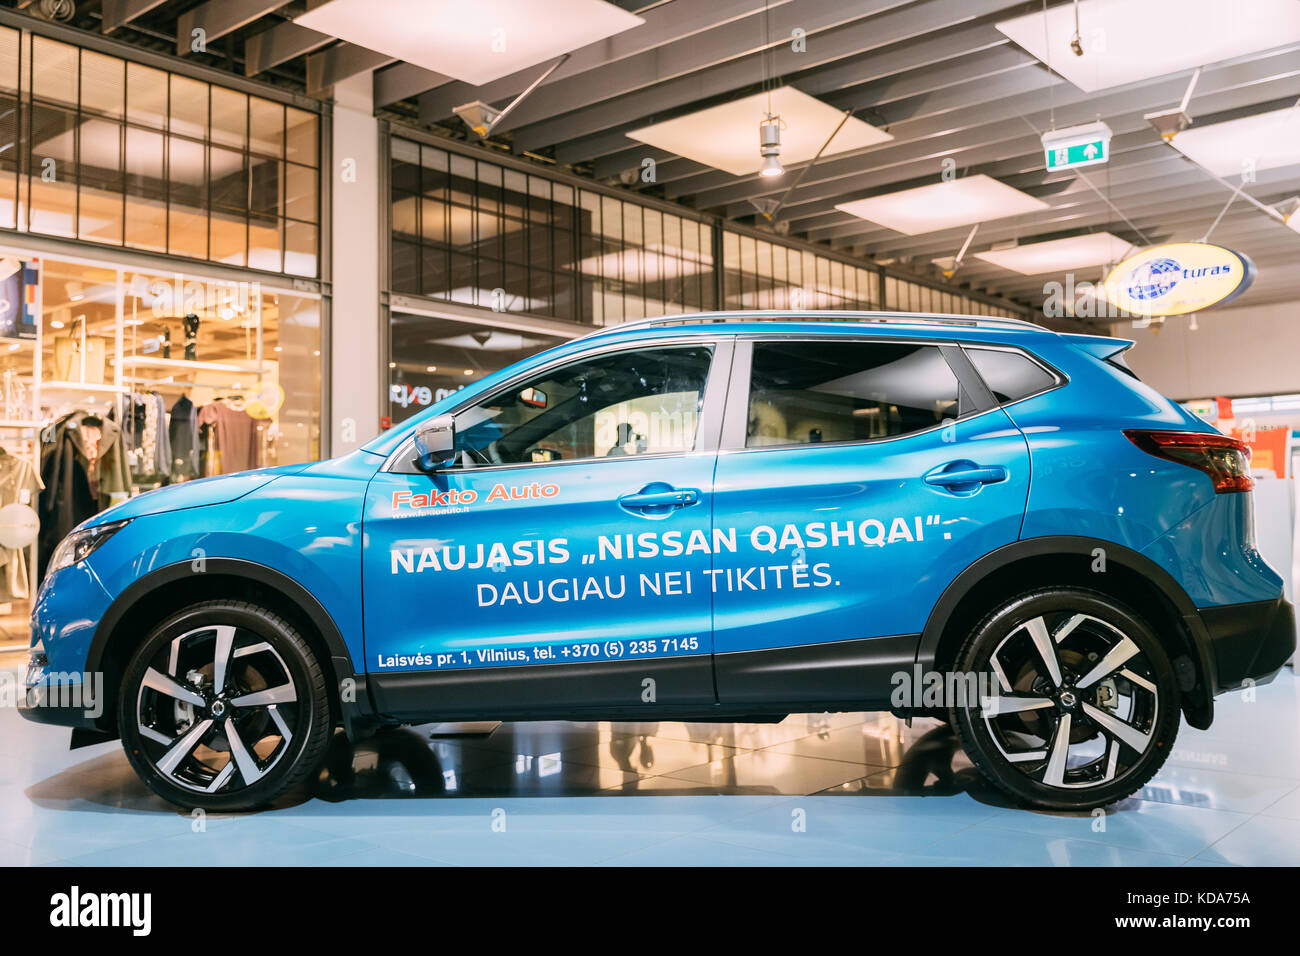 Vilnius, Lithuania - September 21, 2017: Blue color compact crossover SUV Car Nissan Qashqai In Hall Of Shopping - Stock Image